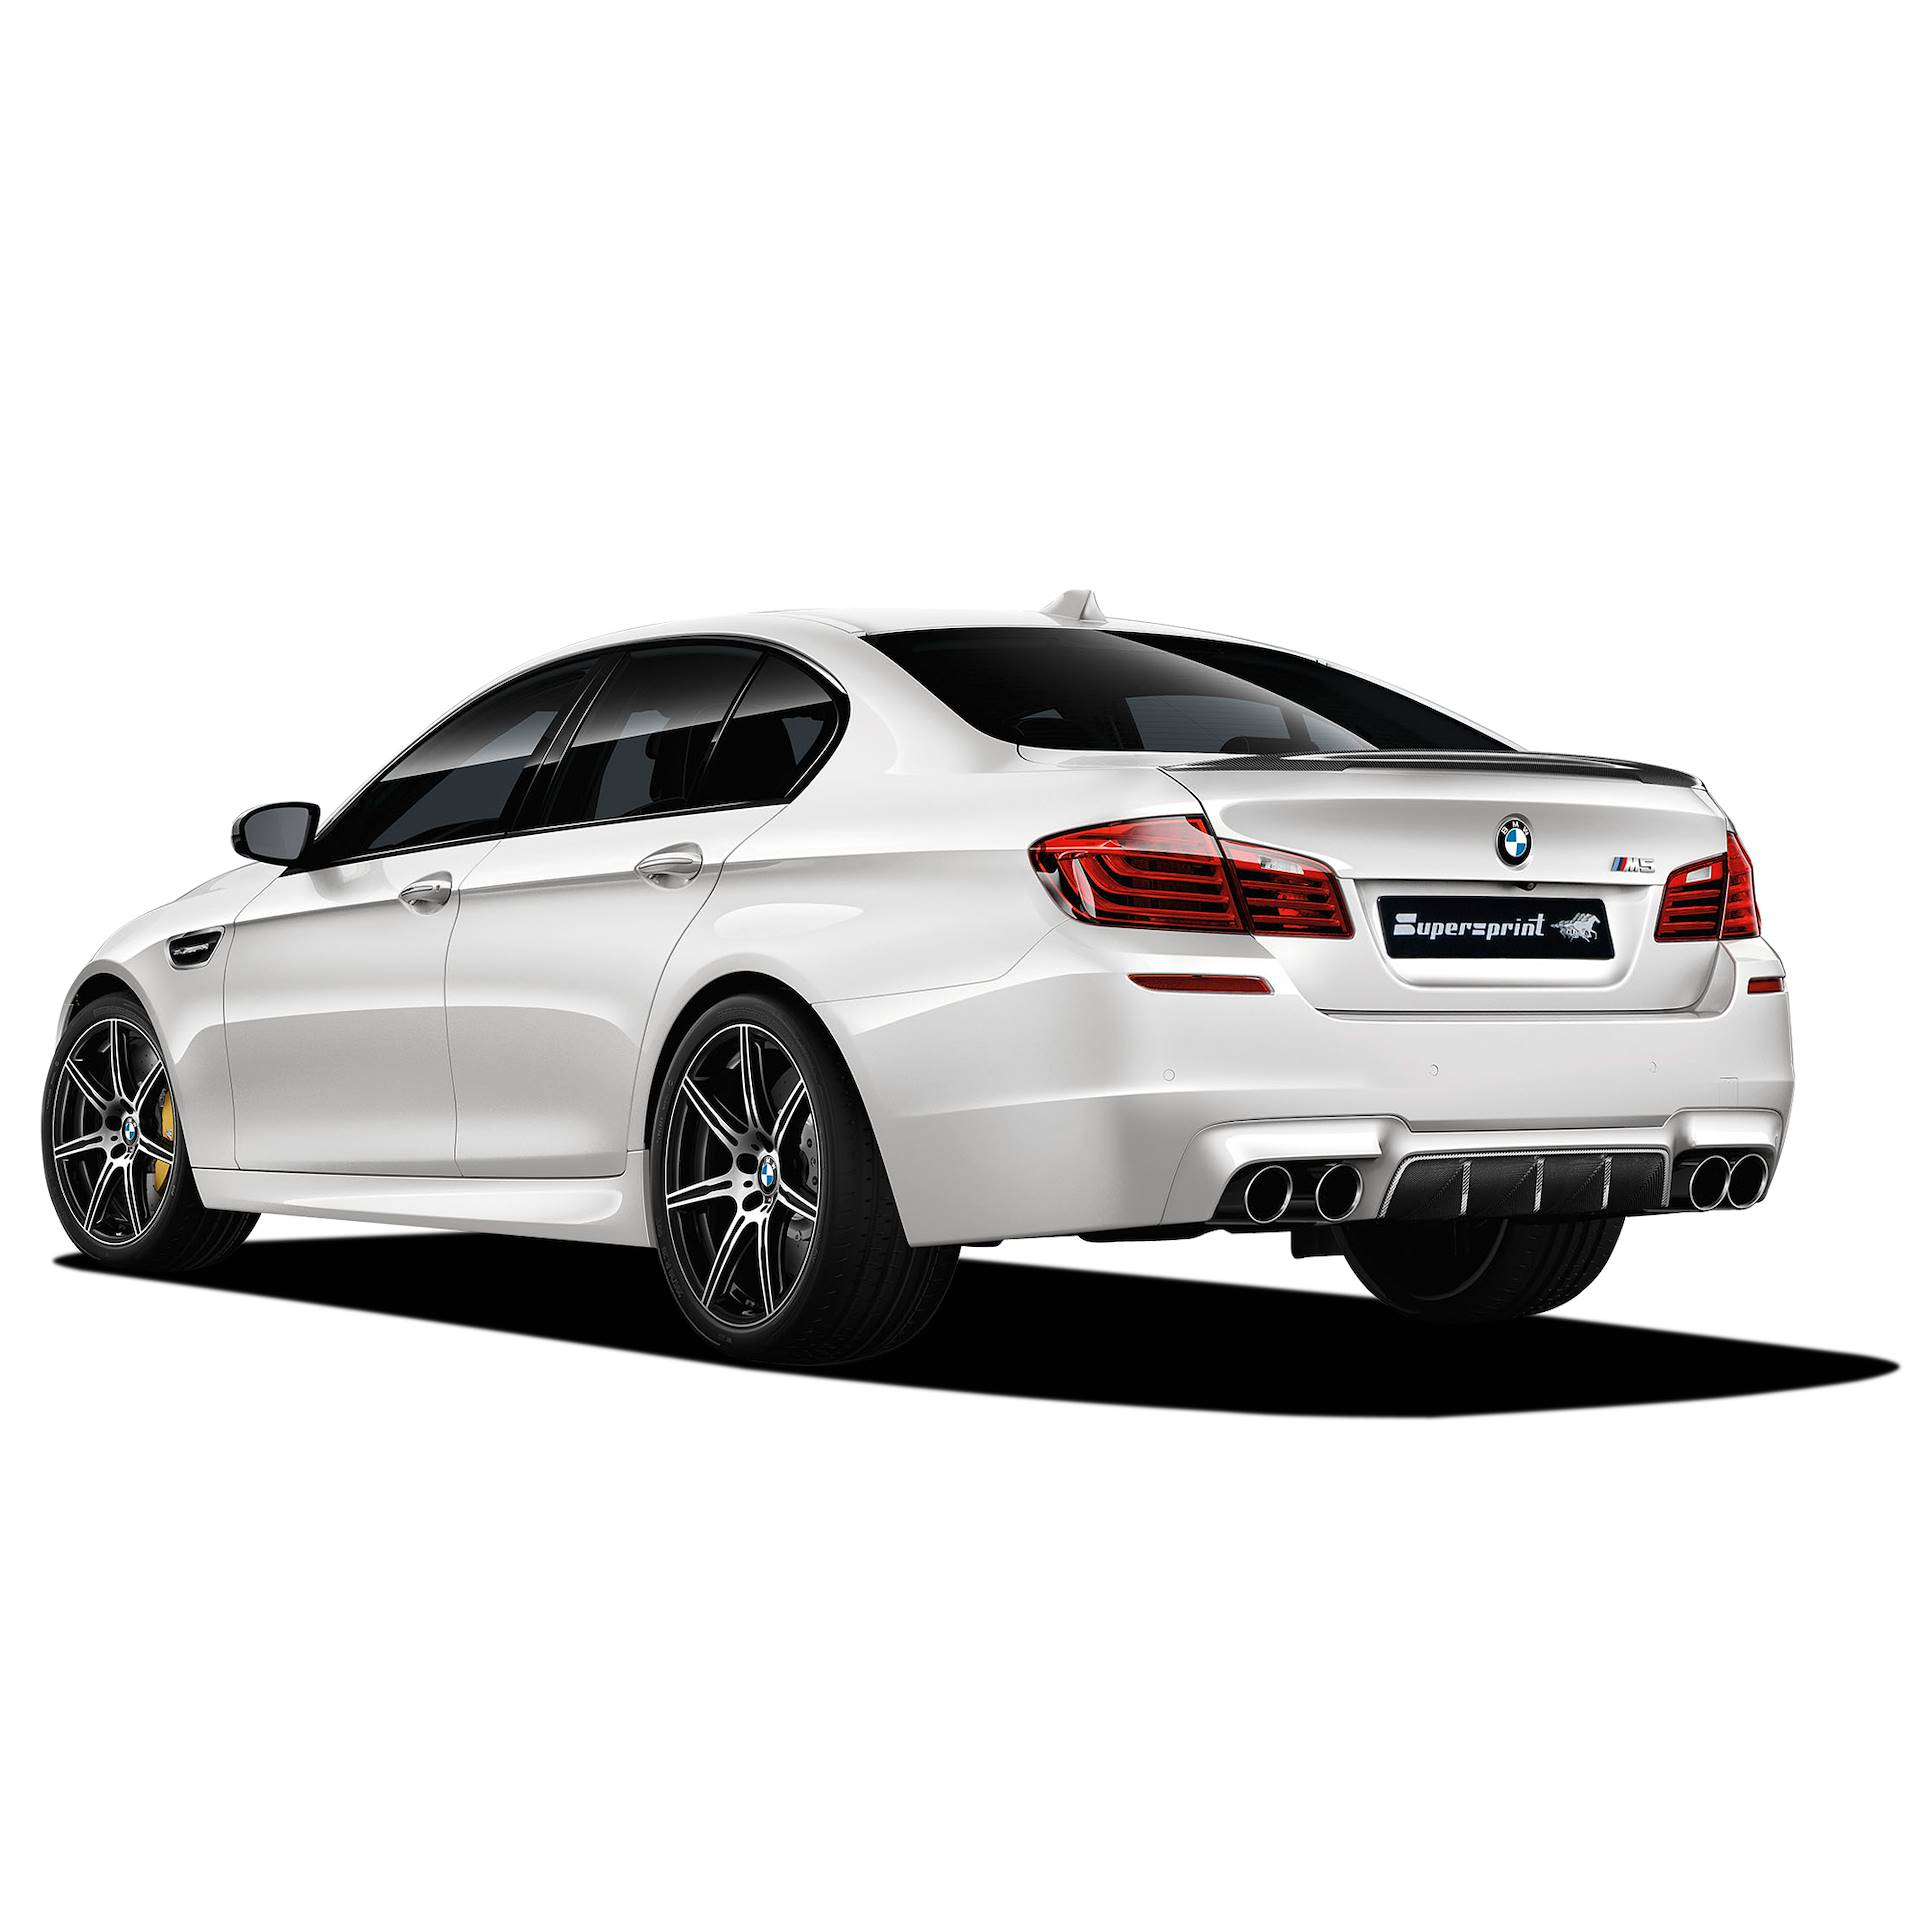 bmw f10 m5 4 4 v8 competition package 575 hp 2016 bmw. Black Bedroom Furniture Sets. Home Design Ideas